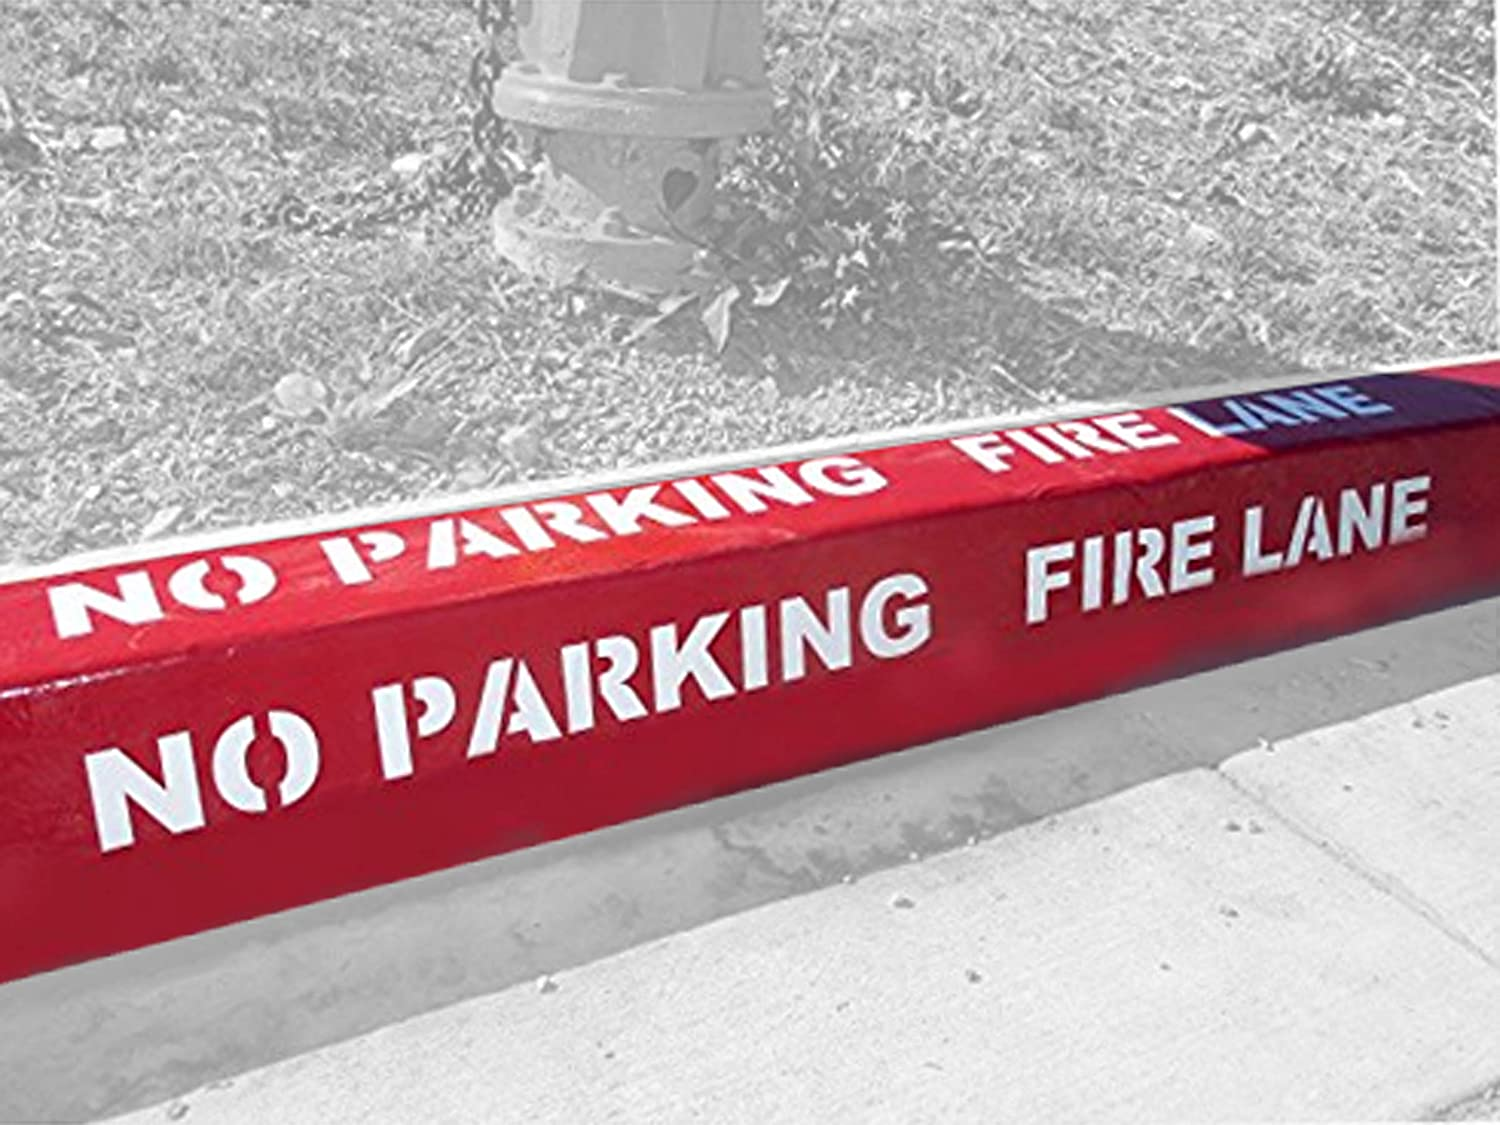 "FIRE LANE PARKING LOT STENCIL 6 INCH LETTERS 40/"" LONG FREE SHIPPING"